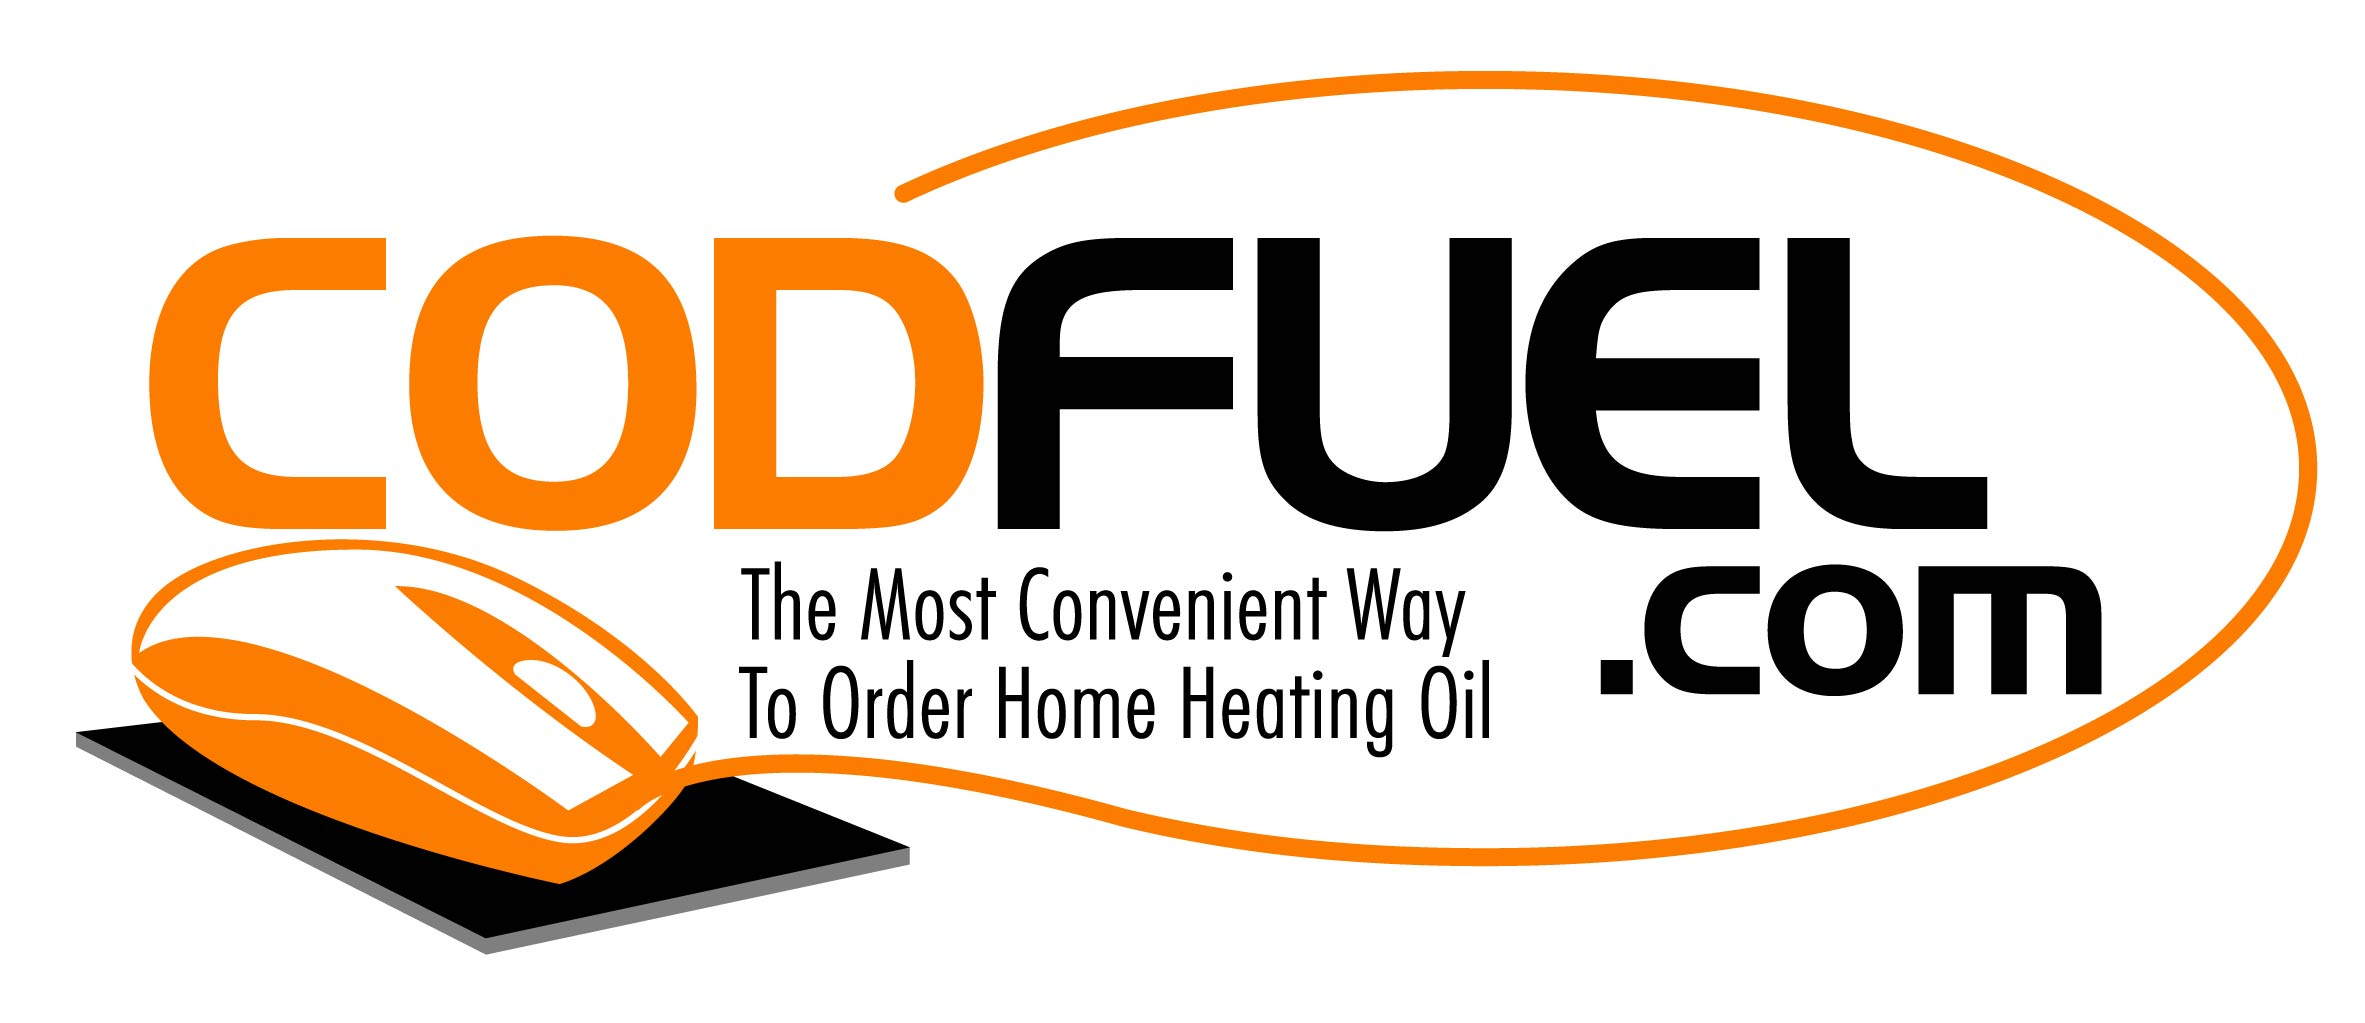 Codfuel.com partnered with Timms Petroleum Web to get the message out to consumers on how to get their 100 gallon oil delivery from Citizen's Energy